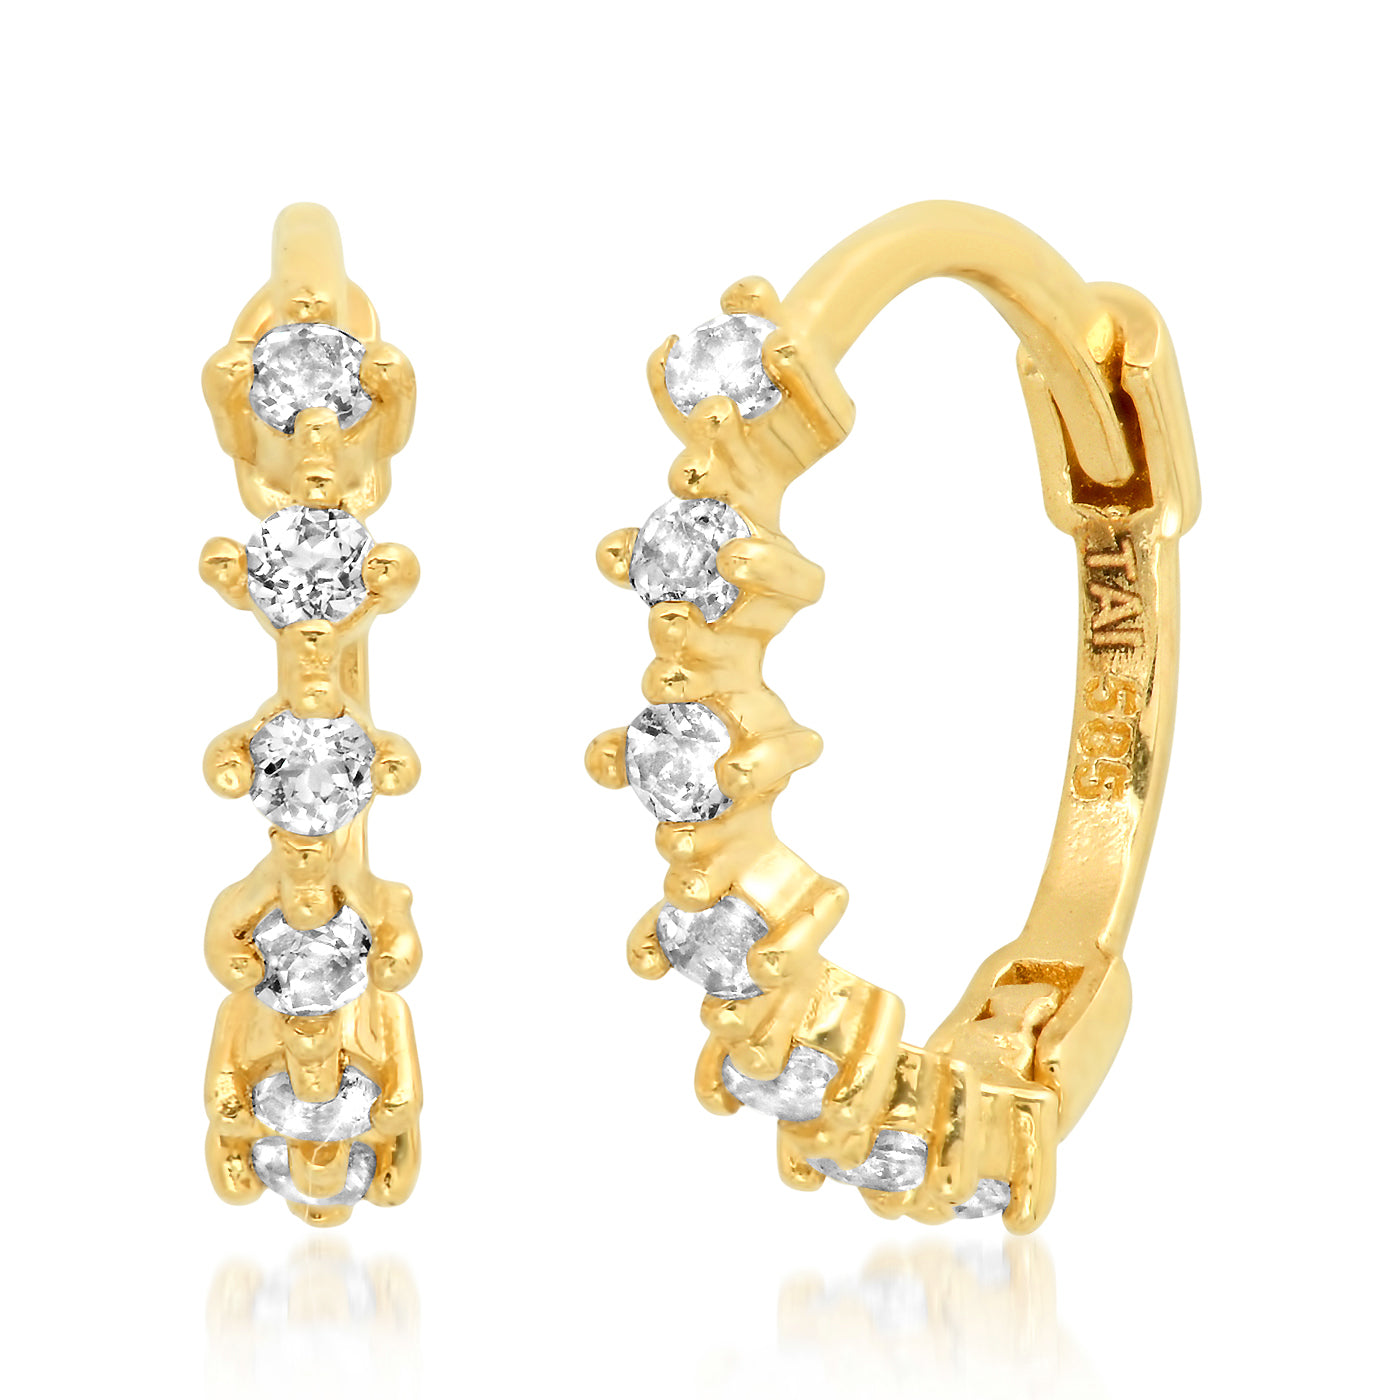 Tai Fine 14k Gold Hinged Hoop Earrings with White Topaz Accents